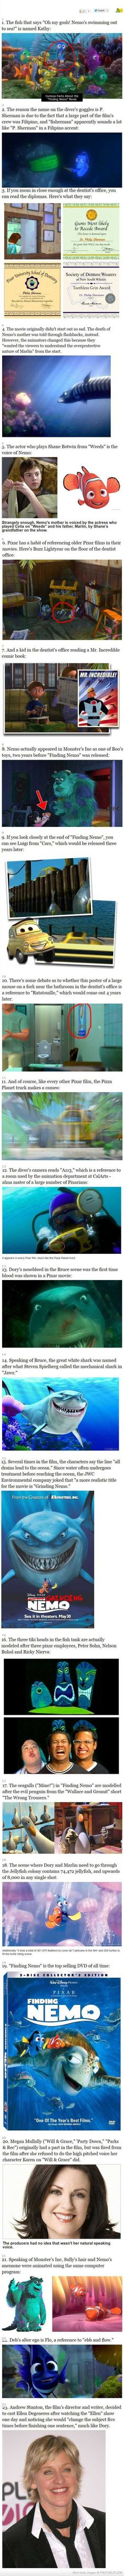 Interesting Facts About Finding Nemo... Can't wait for the sequel Findng Dory 2015